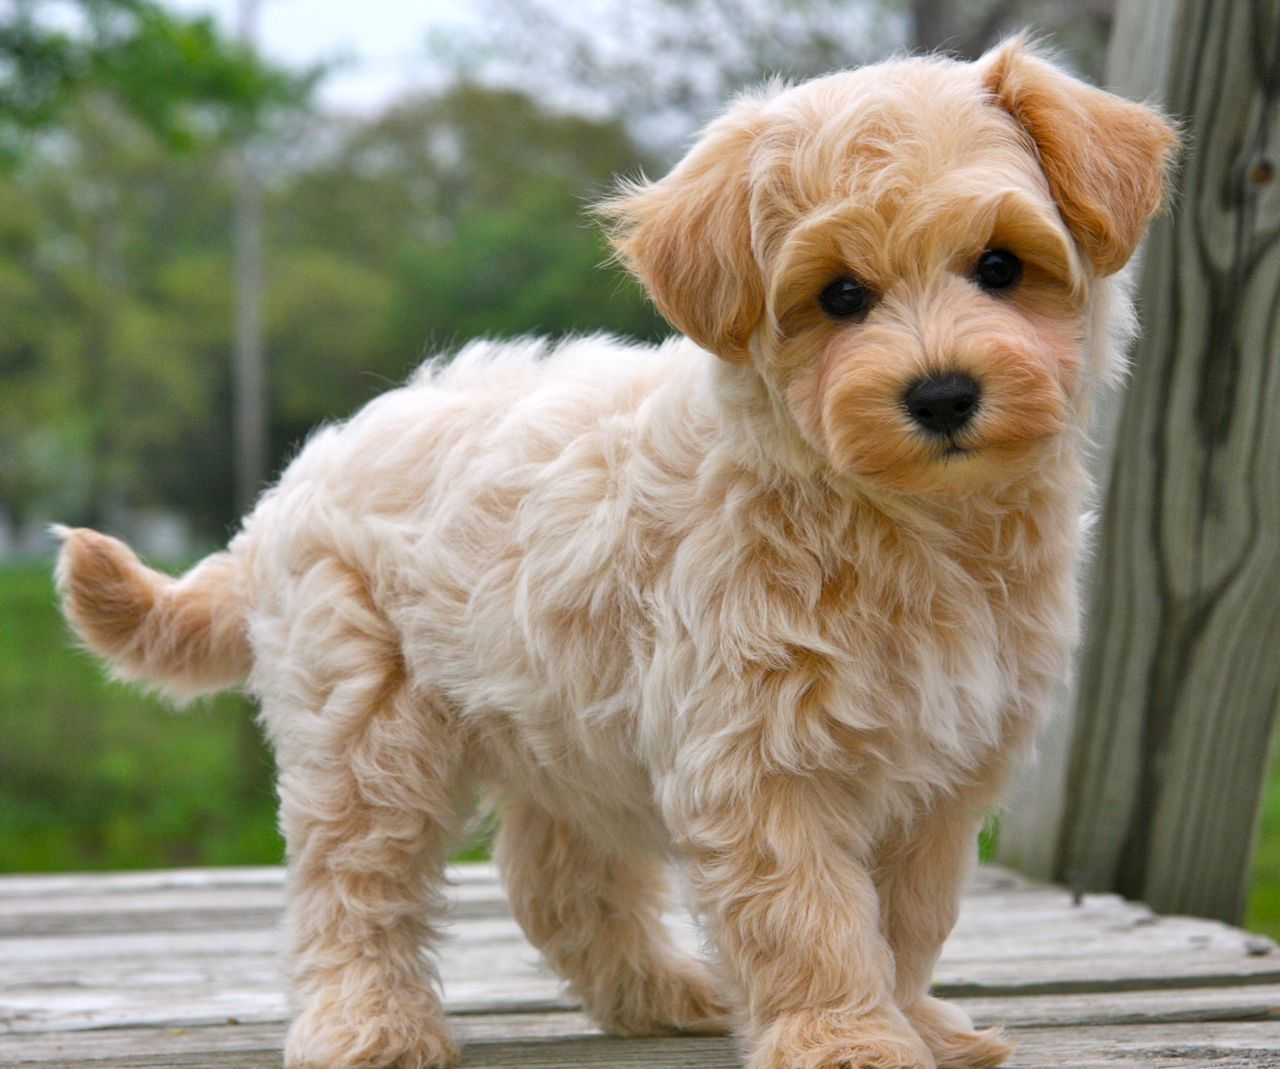 maltipoo puppies - Google Search | Want one ️ | Pinterest ...